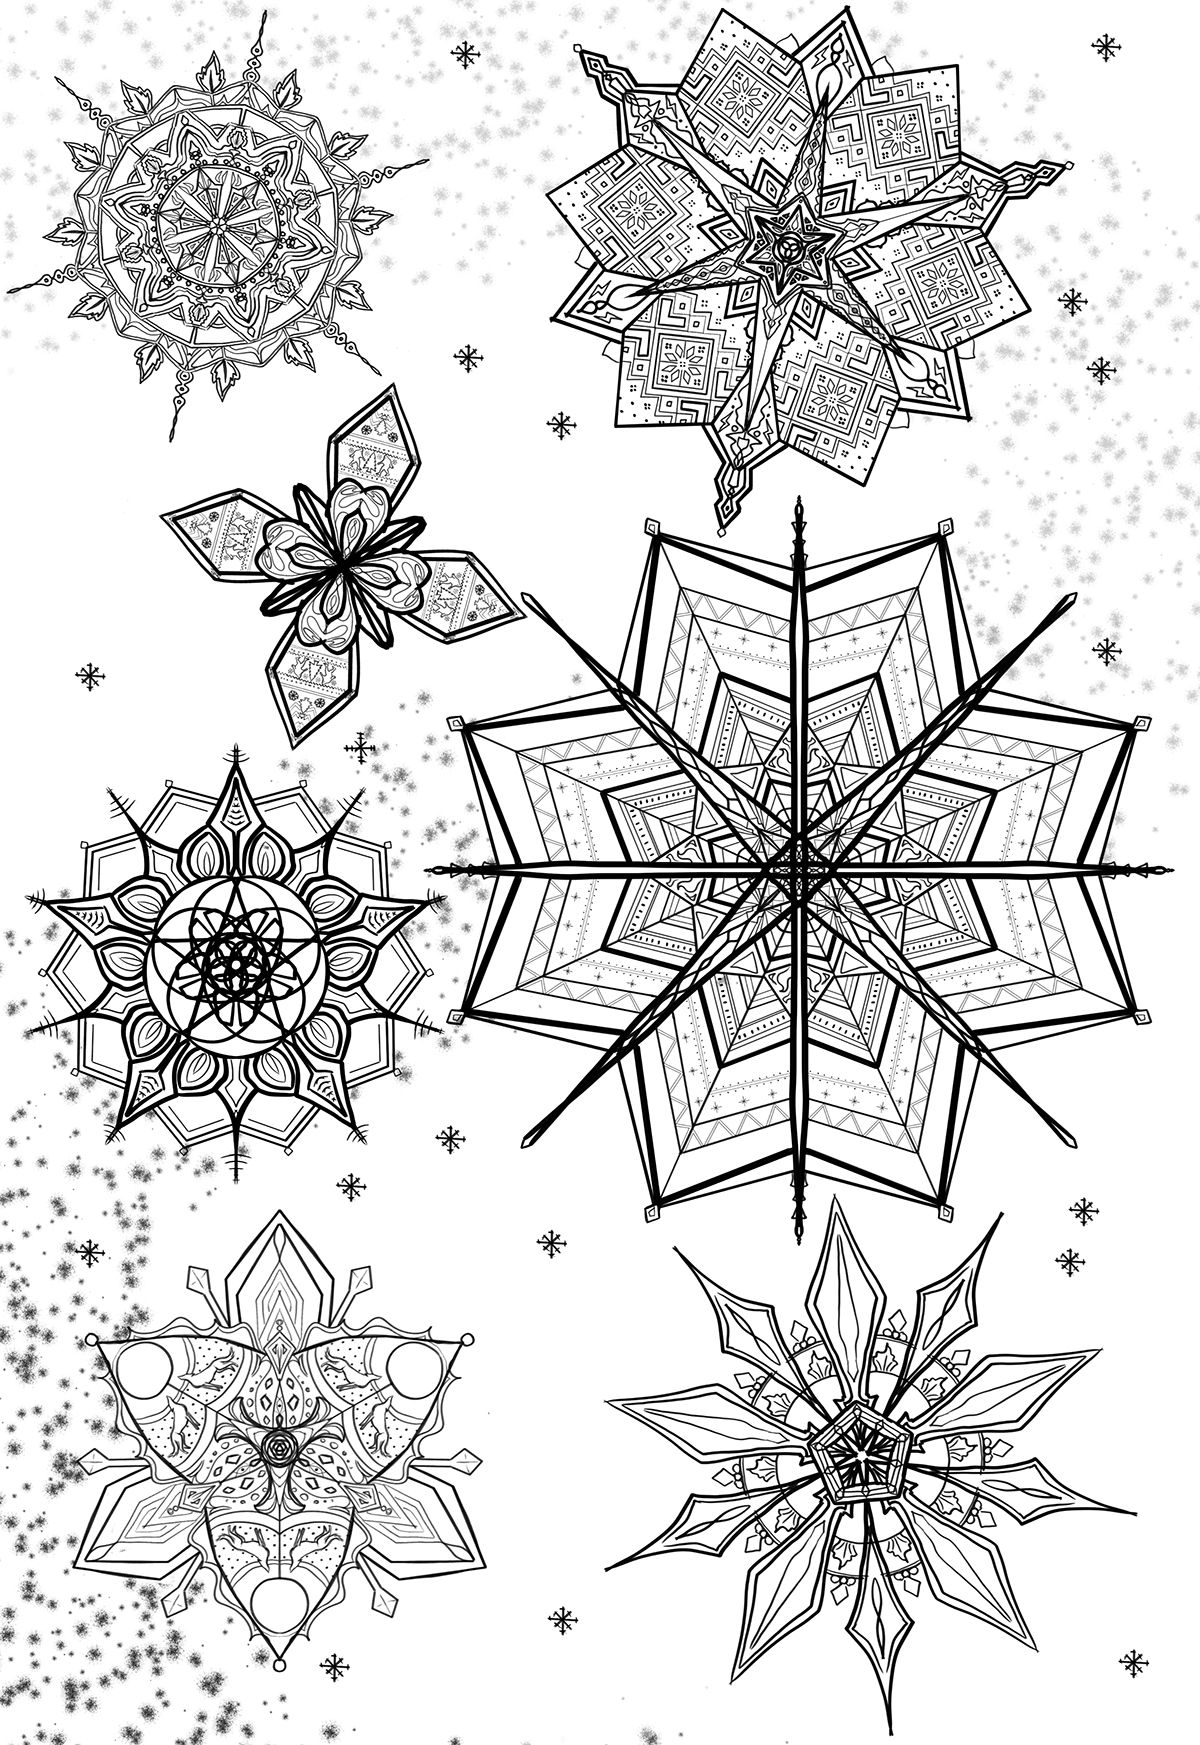 Snowflake Colouring Page on Behance | Coloring Pages ...